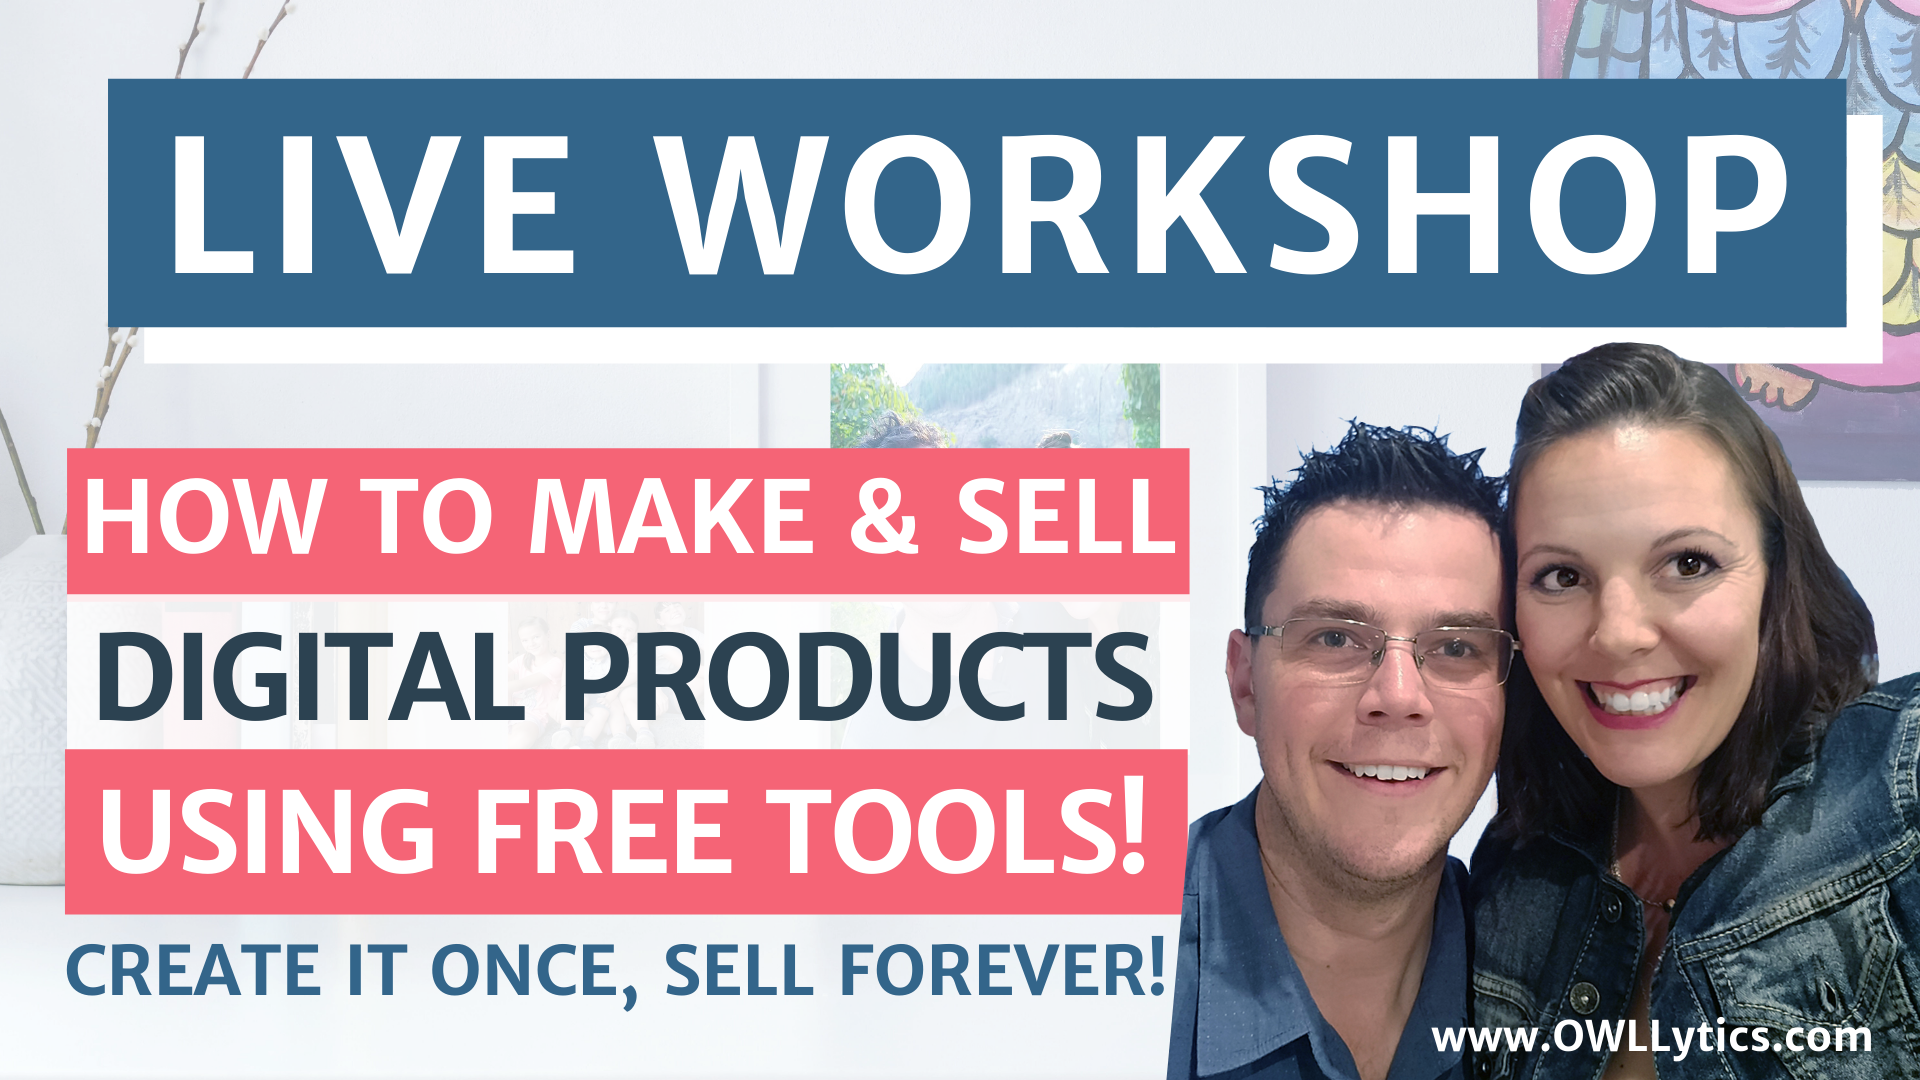 Free Workshop: Learn How To EASILY Make & Sell Digital Products Using 100% Free Tools!